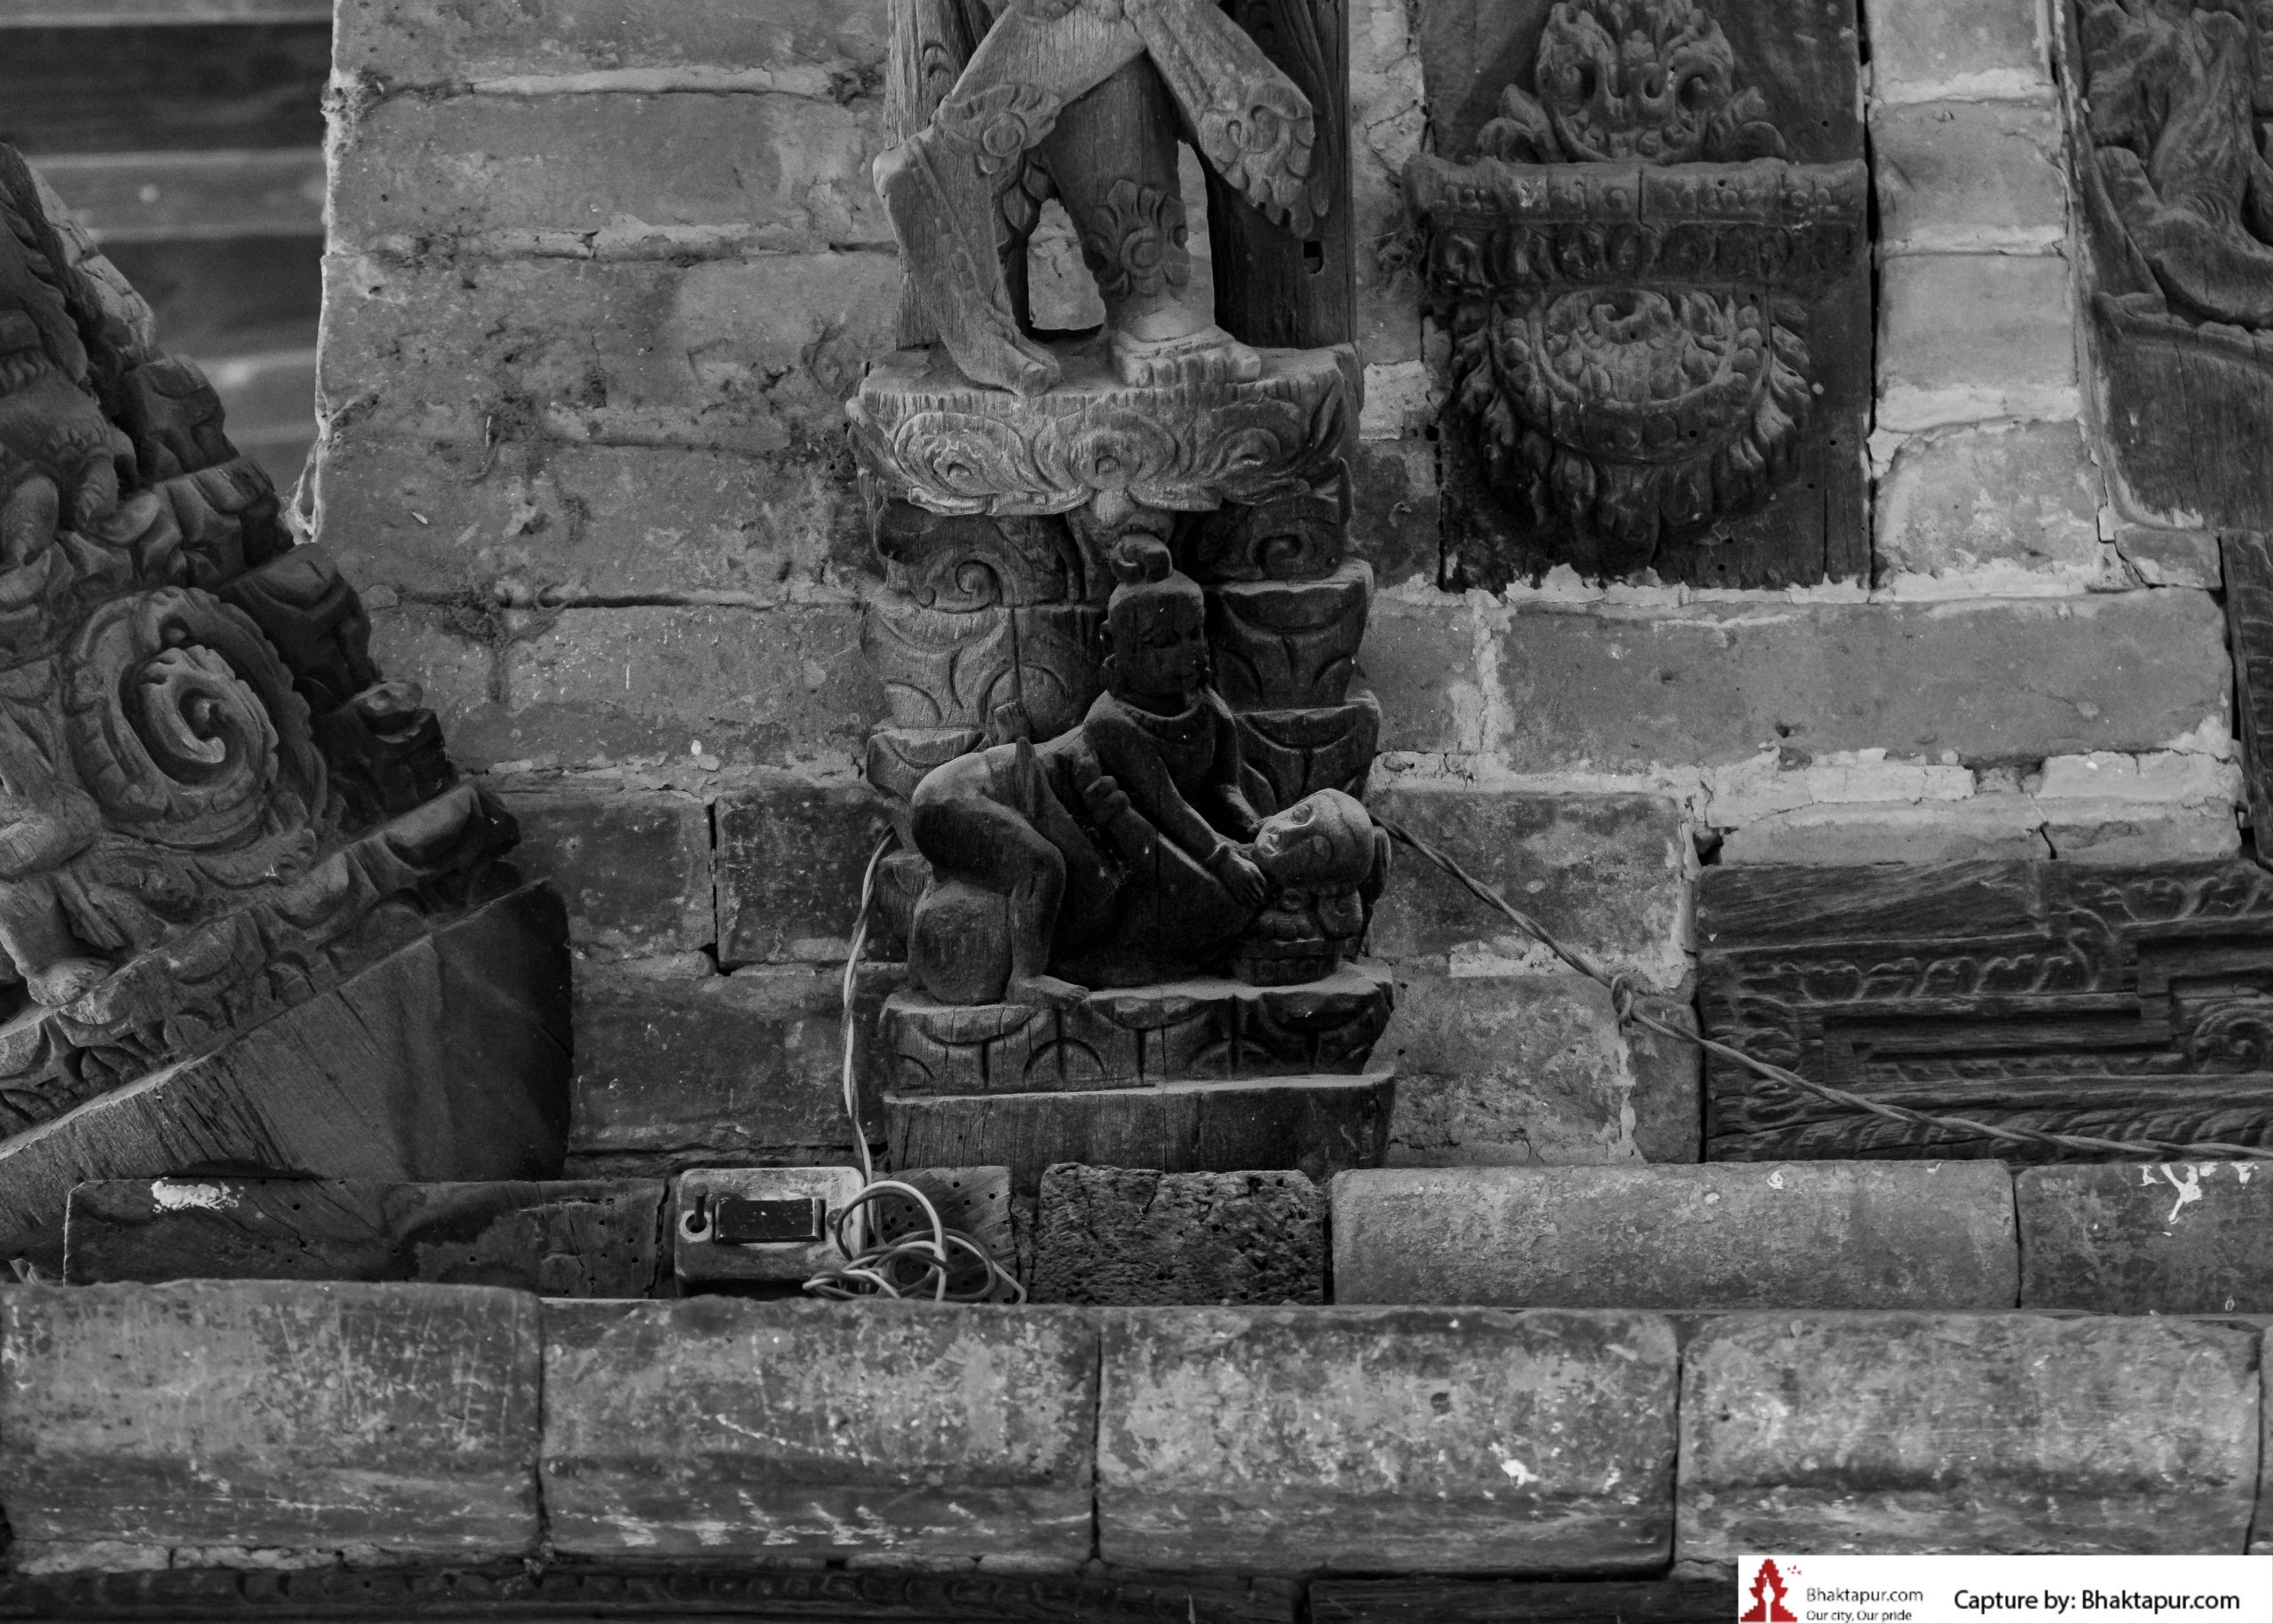 https://www.bhaktapur.com/wp-content/uploads/2021/08/erotic-carving-116-of-137-scaled.jpg